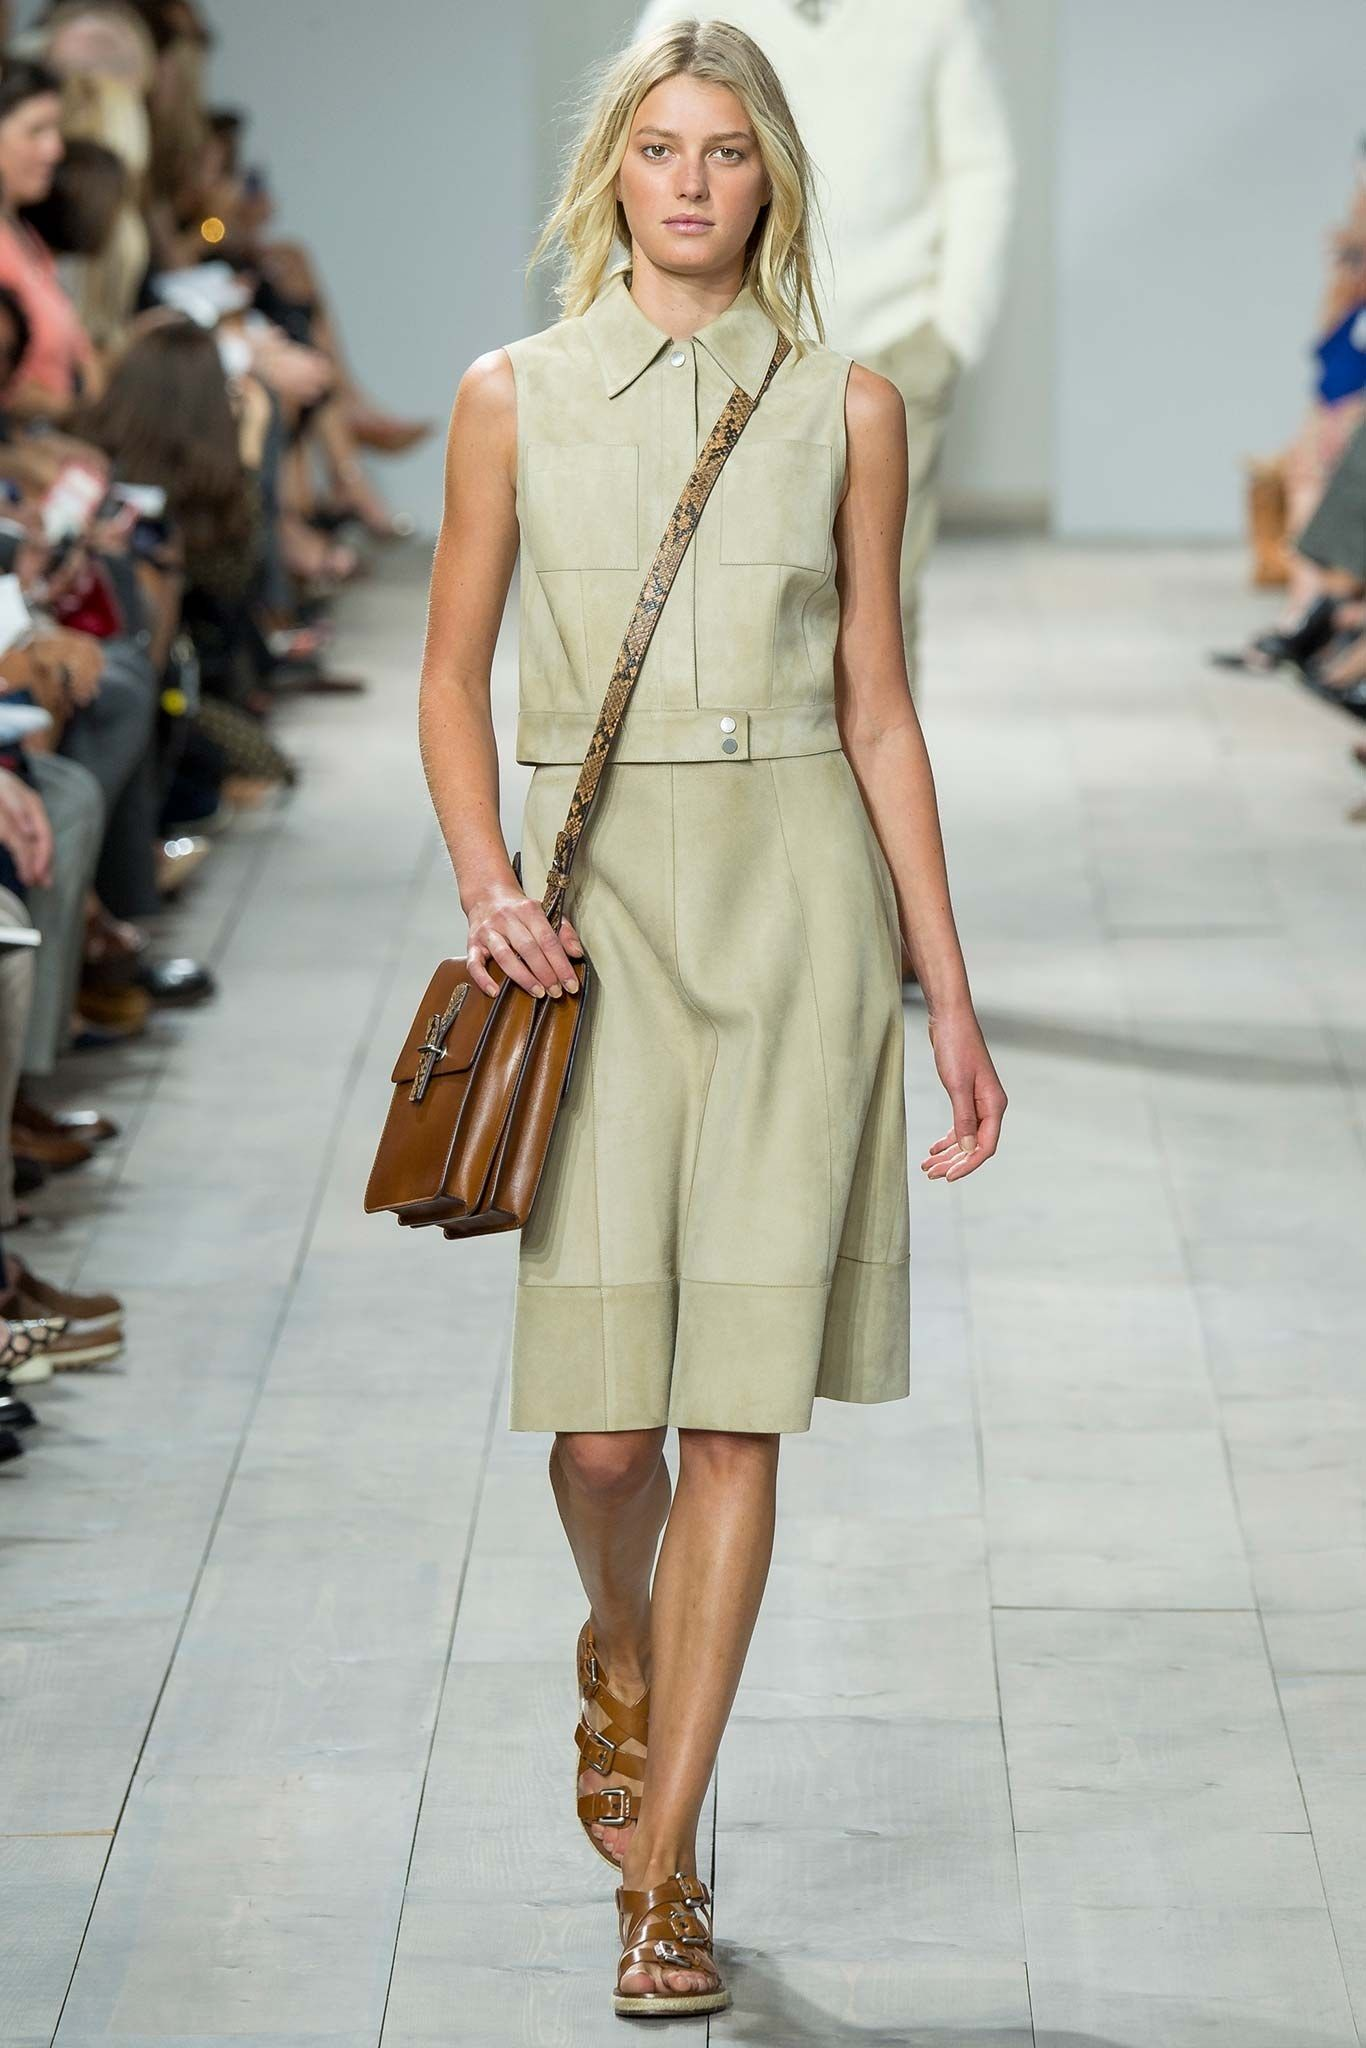 8c3cc80e2fa8 Michael Kors Collection Spring 2015 Ready-to-Wear Fashion Show - Sigrid  Agren